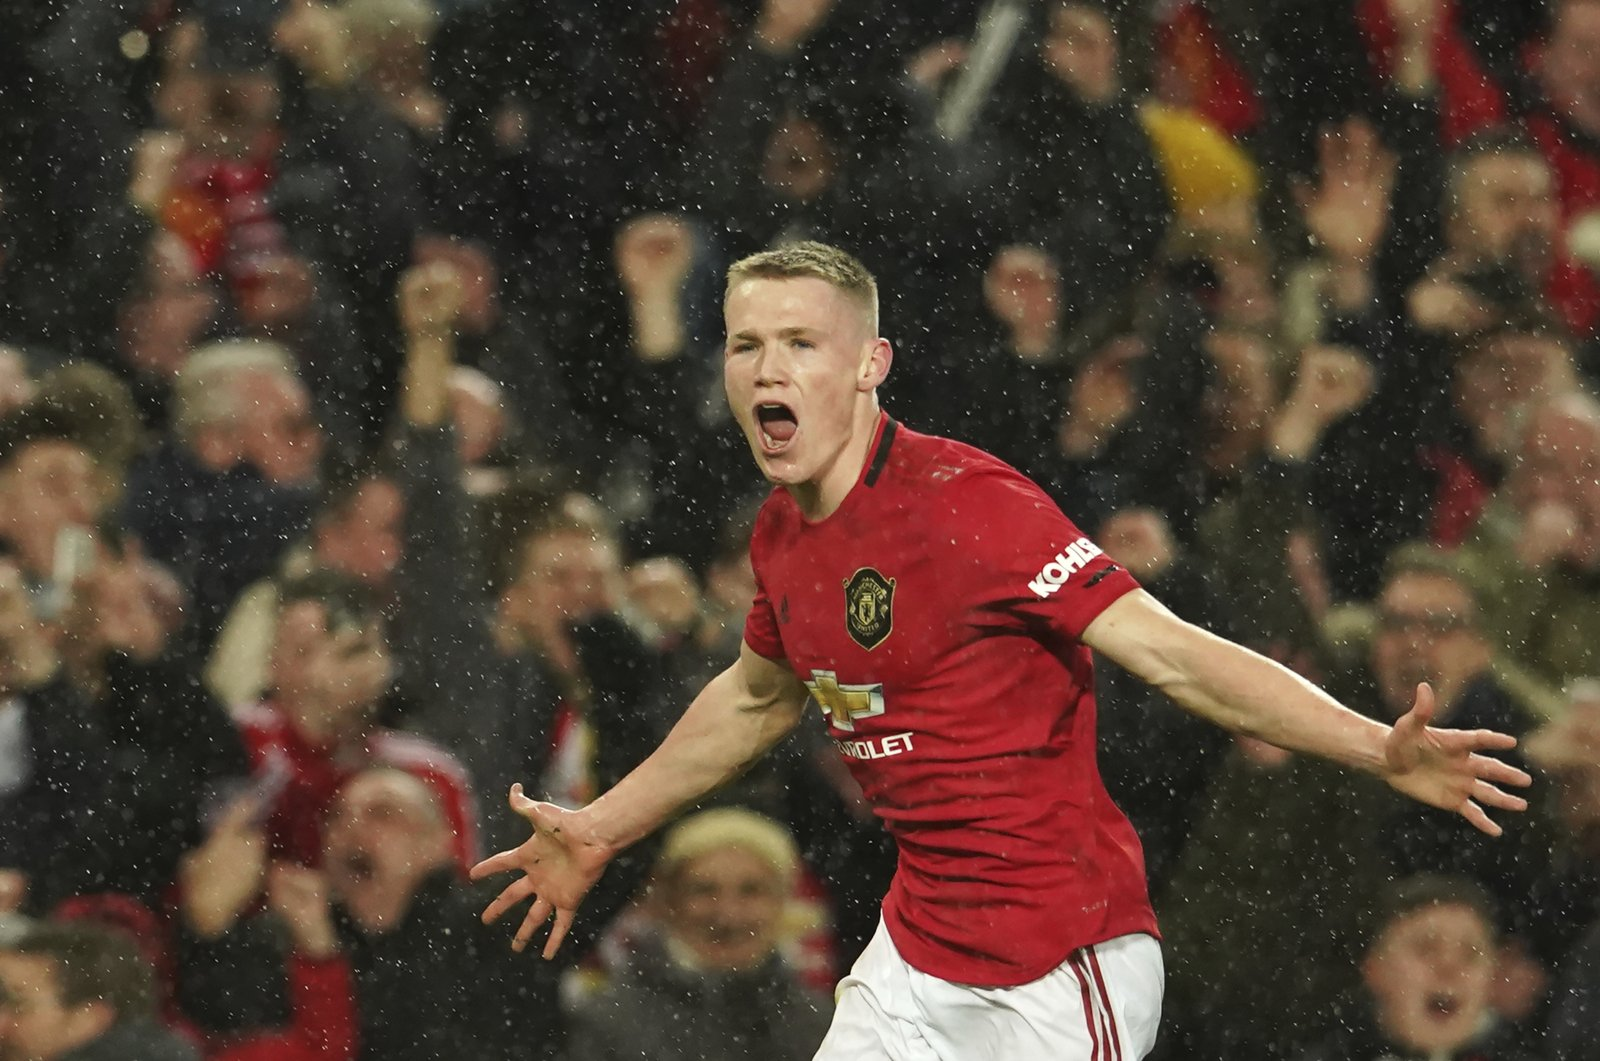 Manchester United's Scott McTominay celebrates a goal during a Premier League match against Manchester City, in Manchester, England, March 8, 2020. (AP Photo)